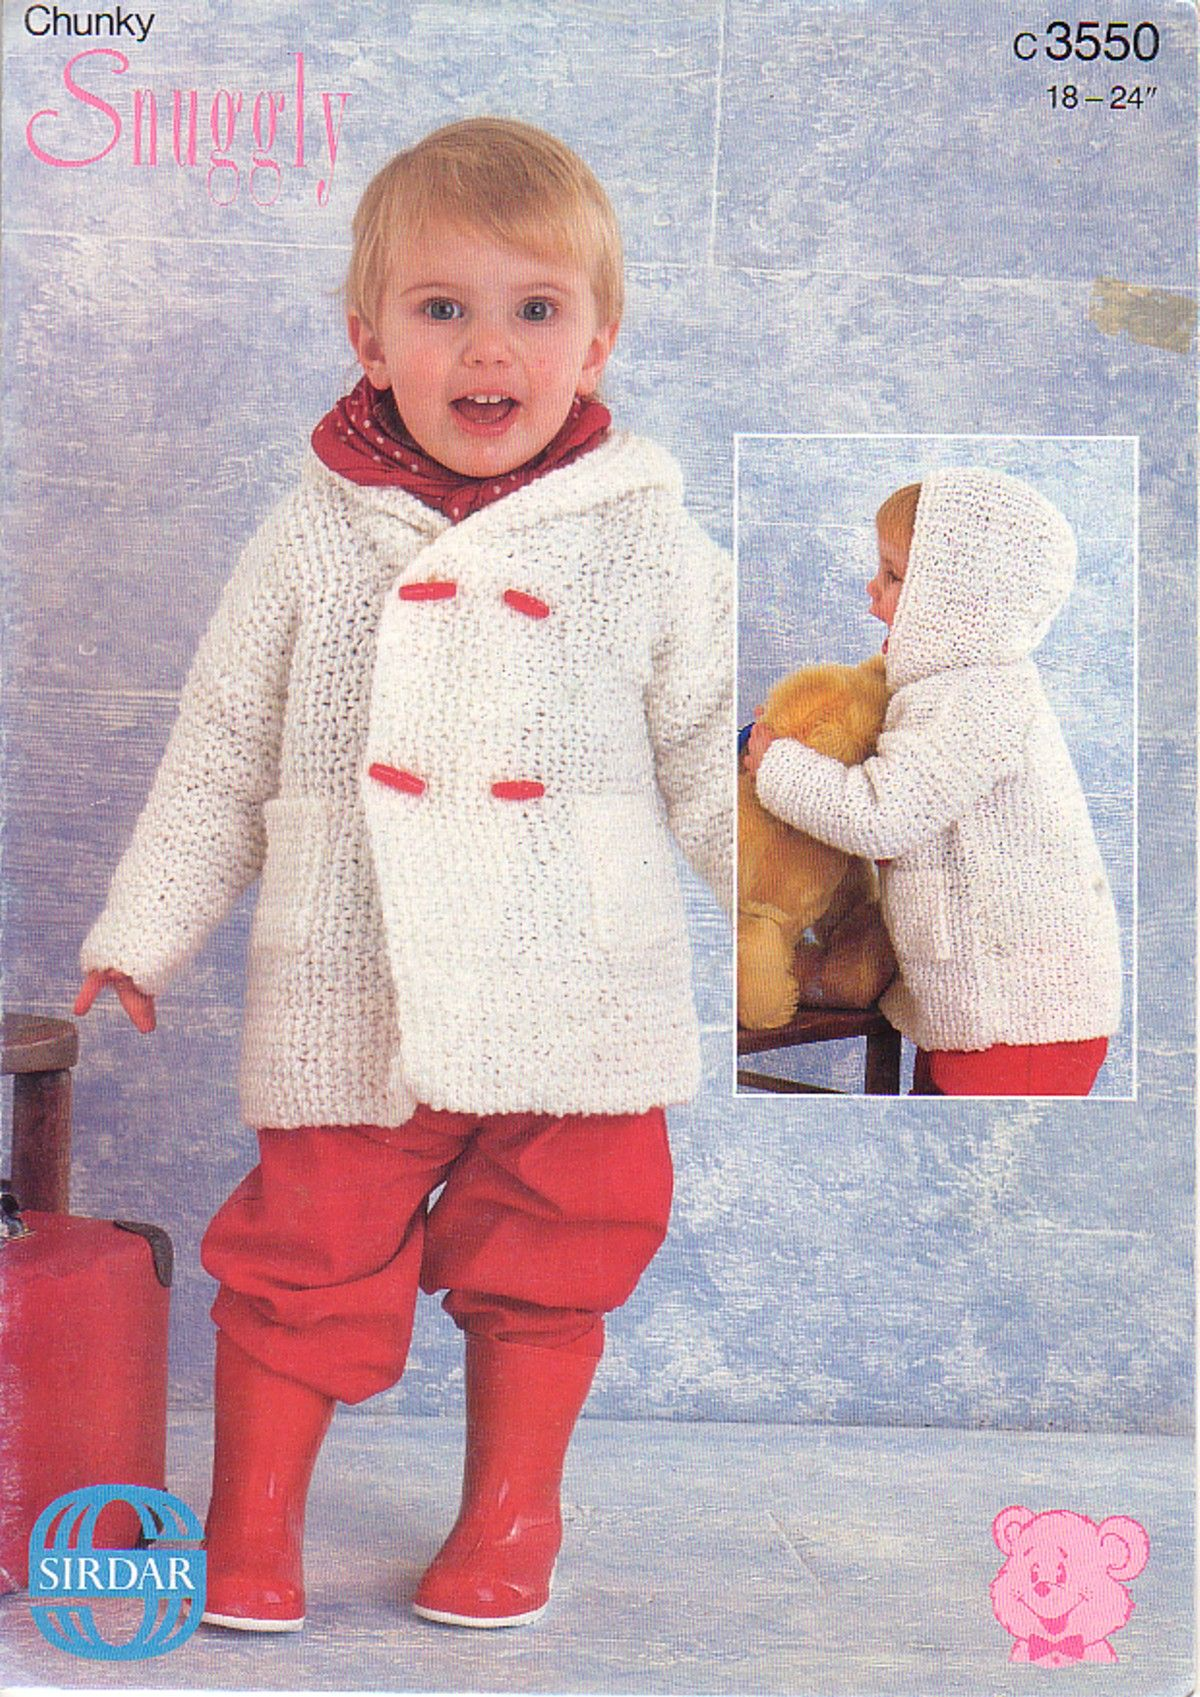 Sirdar knitting patterns 3550 chunky childrens duffle coat sirdar knitting patterns 3550 chunky childrens duffle coat bankloansurffo Image collections